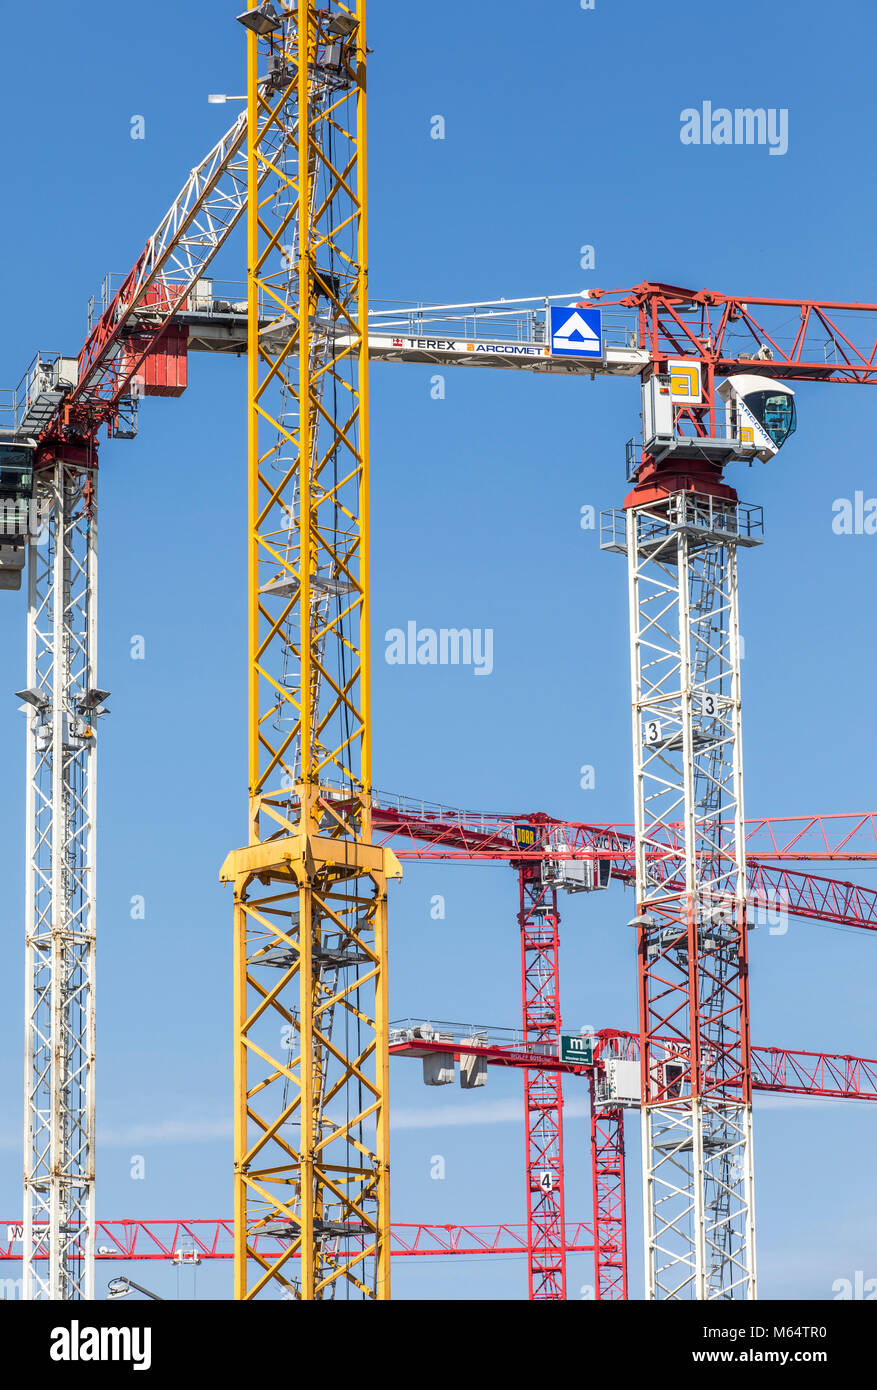 Construction site, construction crane, construction work, Stock Photo